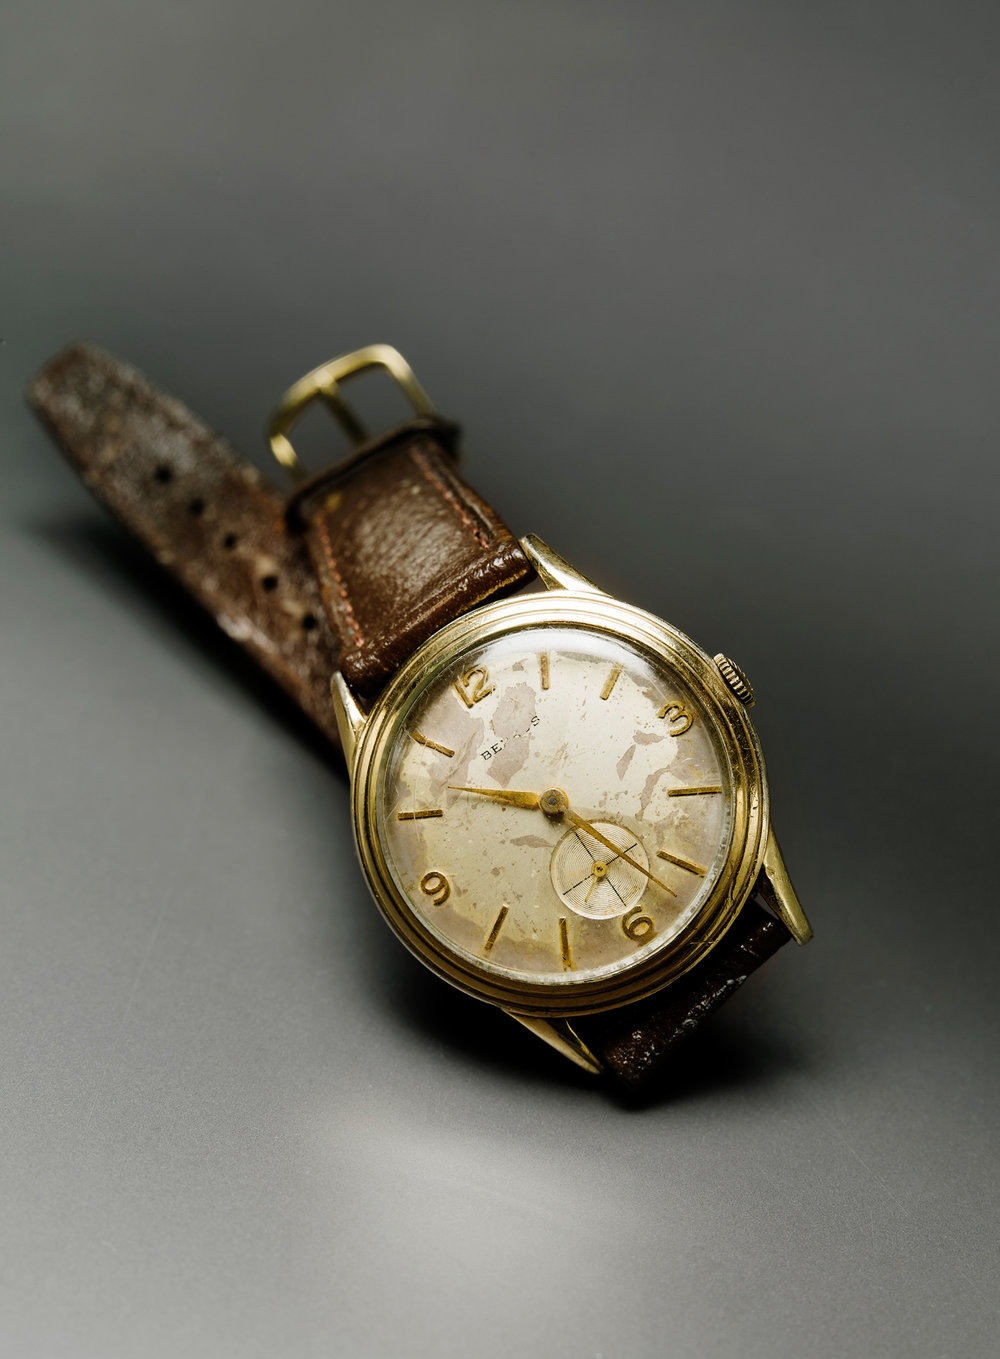 Lee's wristwatch